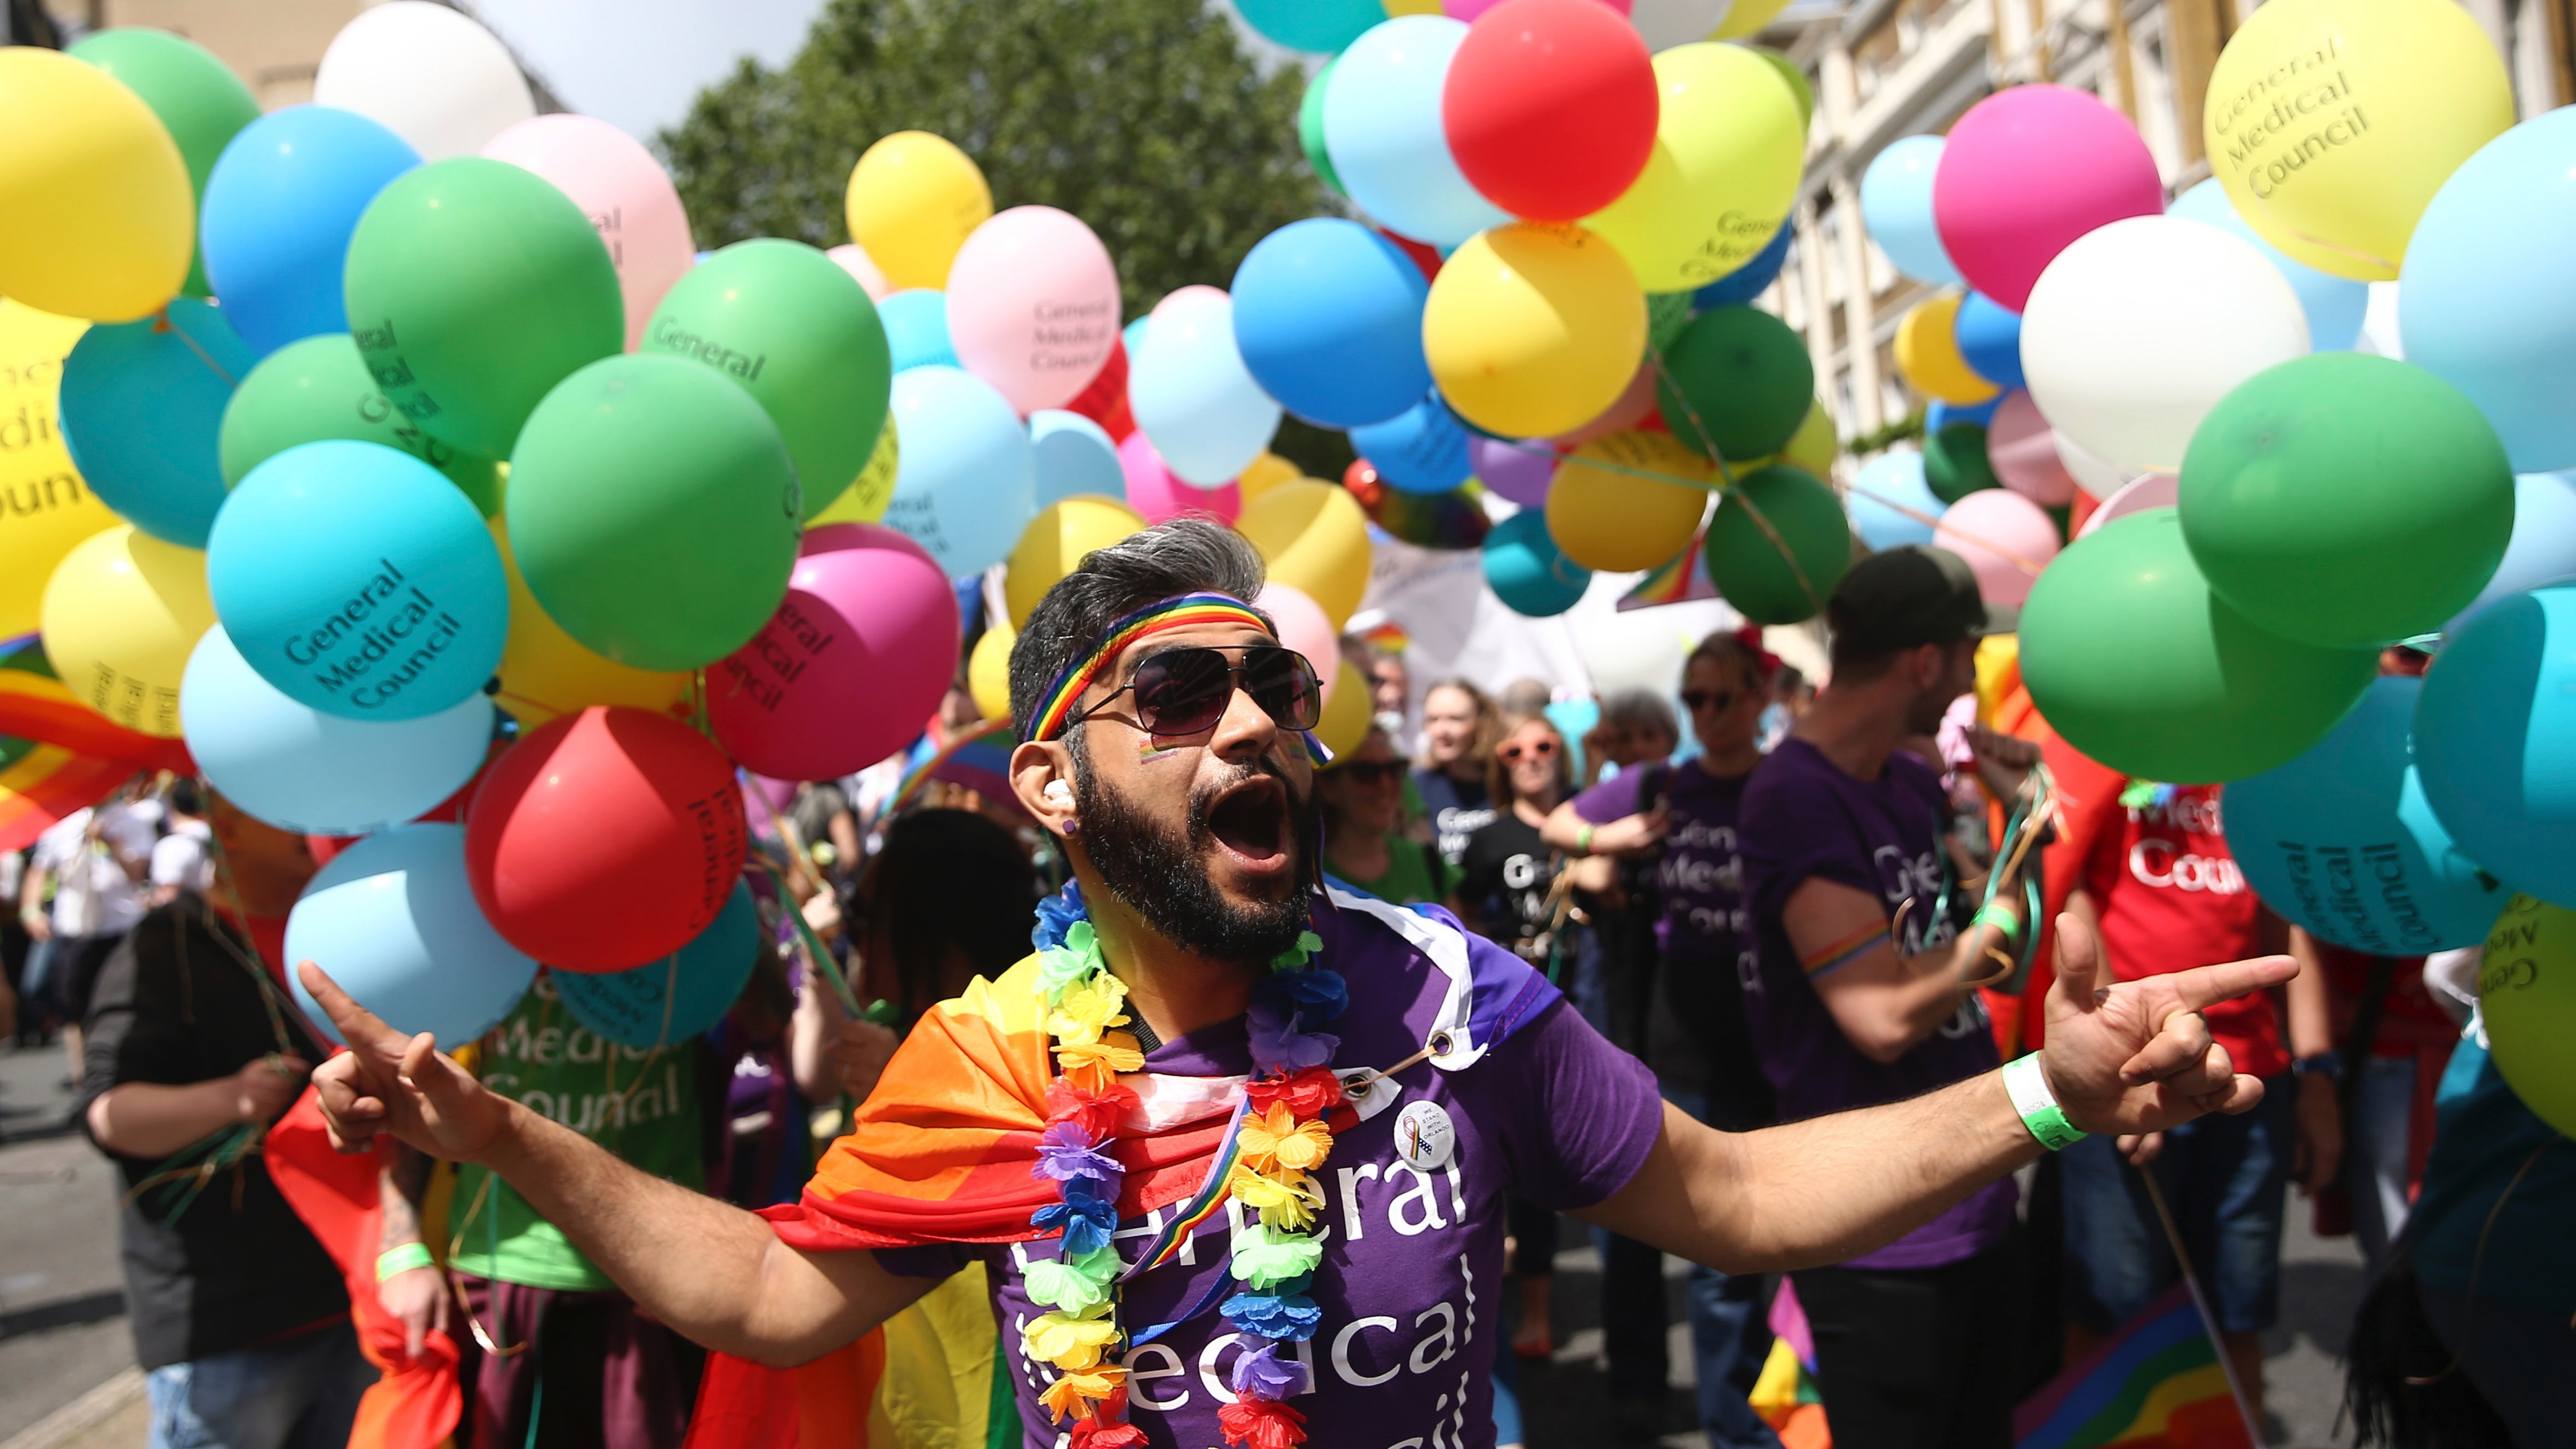 Participants take part in the annual Pride London Parade, in London